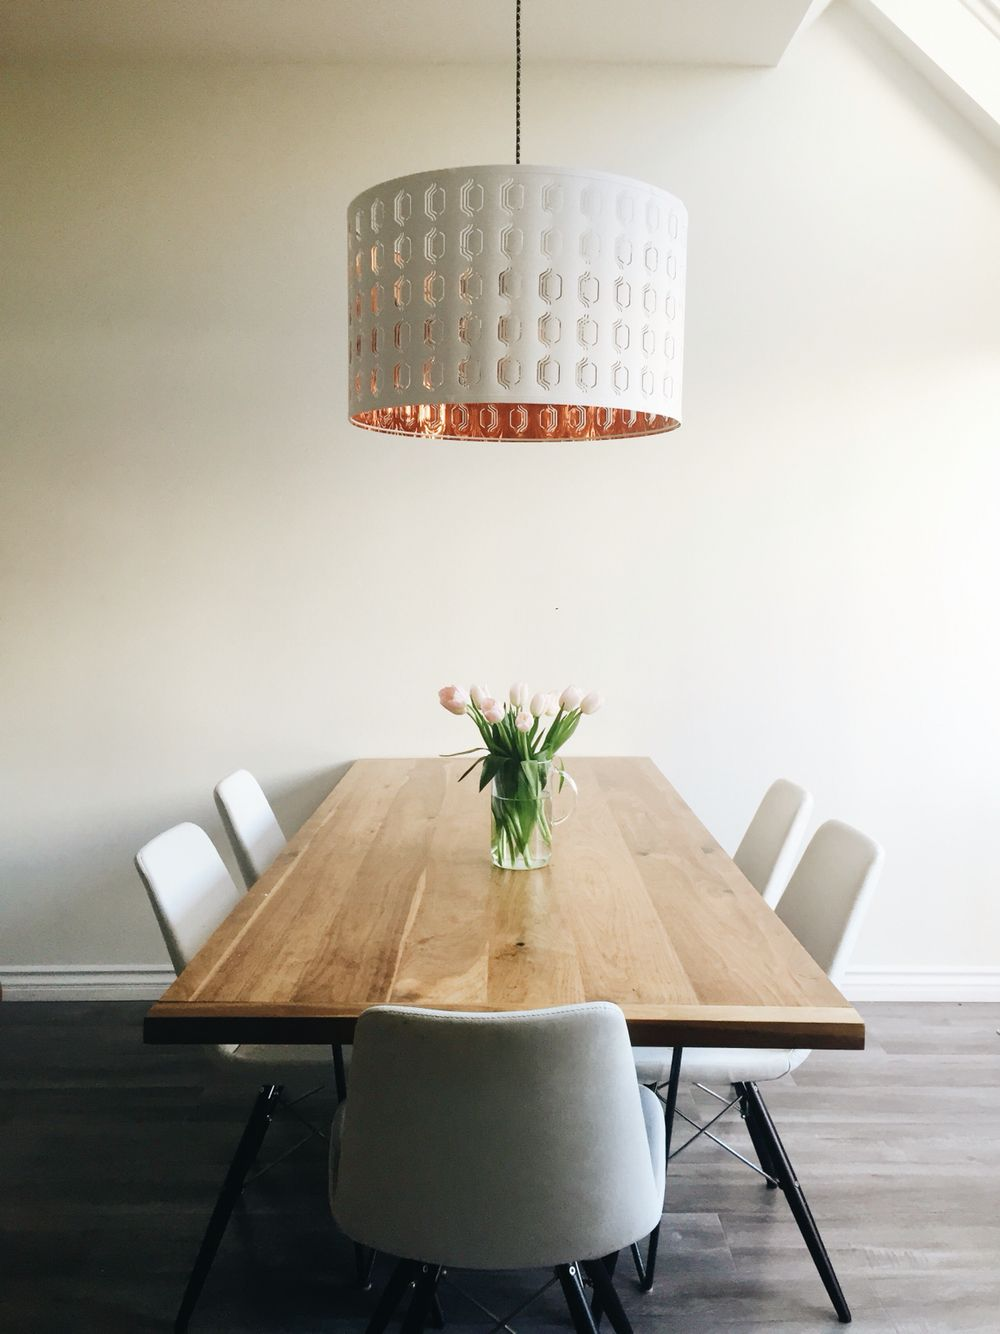 Superbe Minimalist Dining Room With IKEA Pendant Light In Copper And White  #minimalist #myhouse